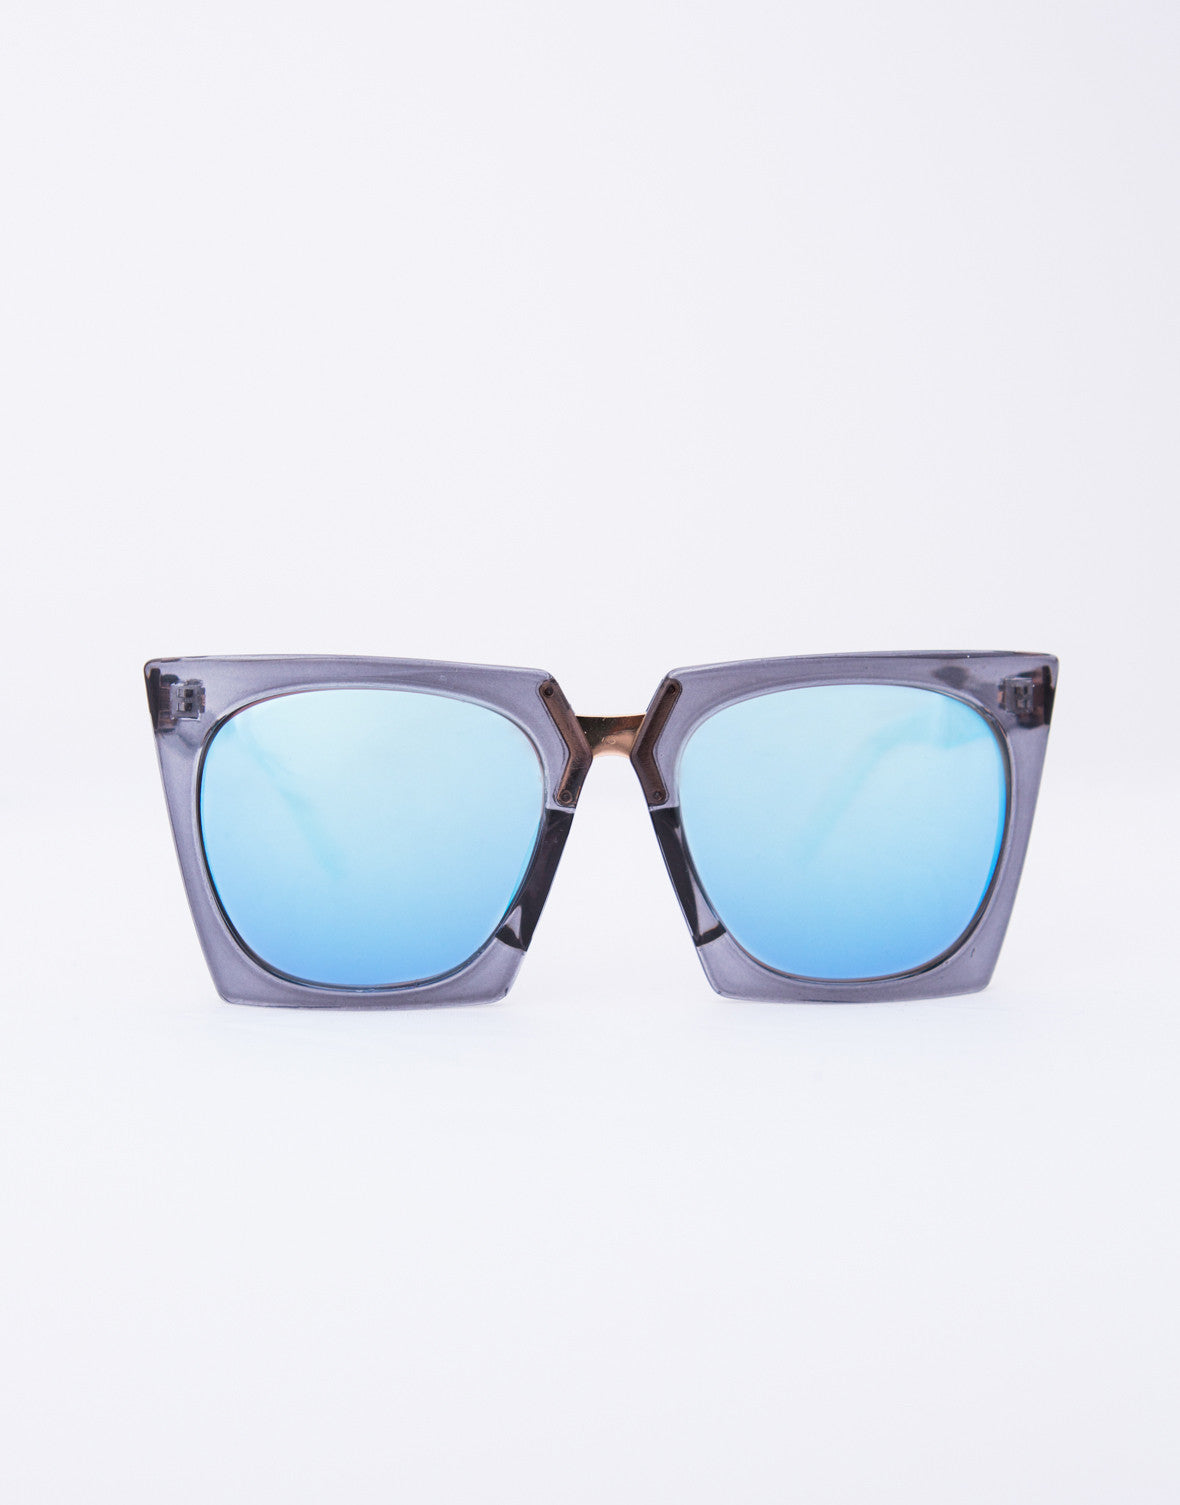 Vintage Squared In Sunglasses